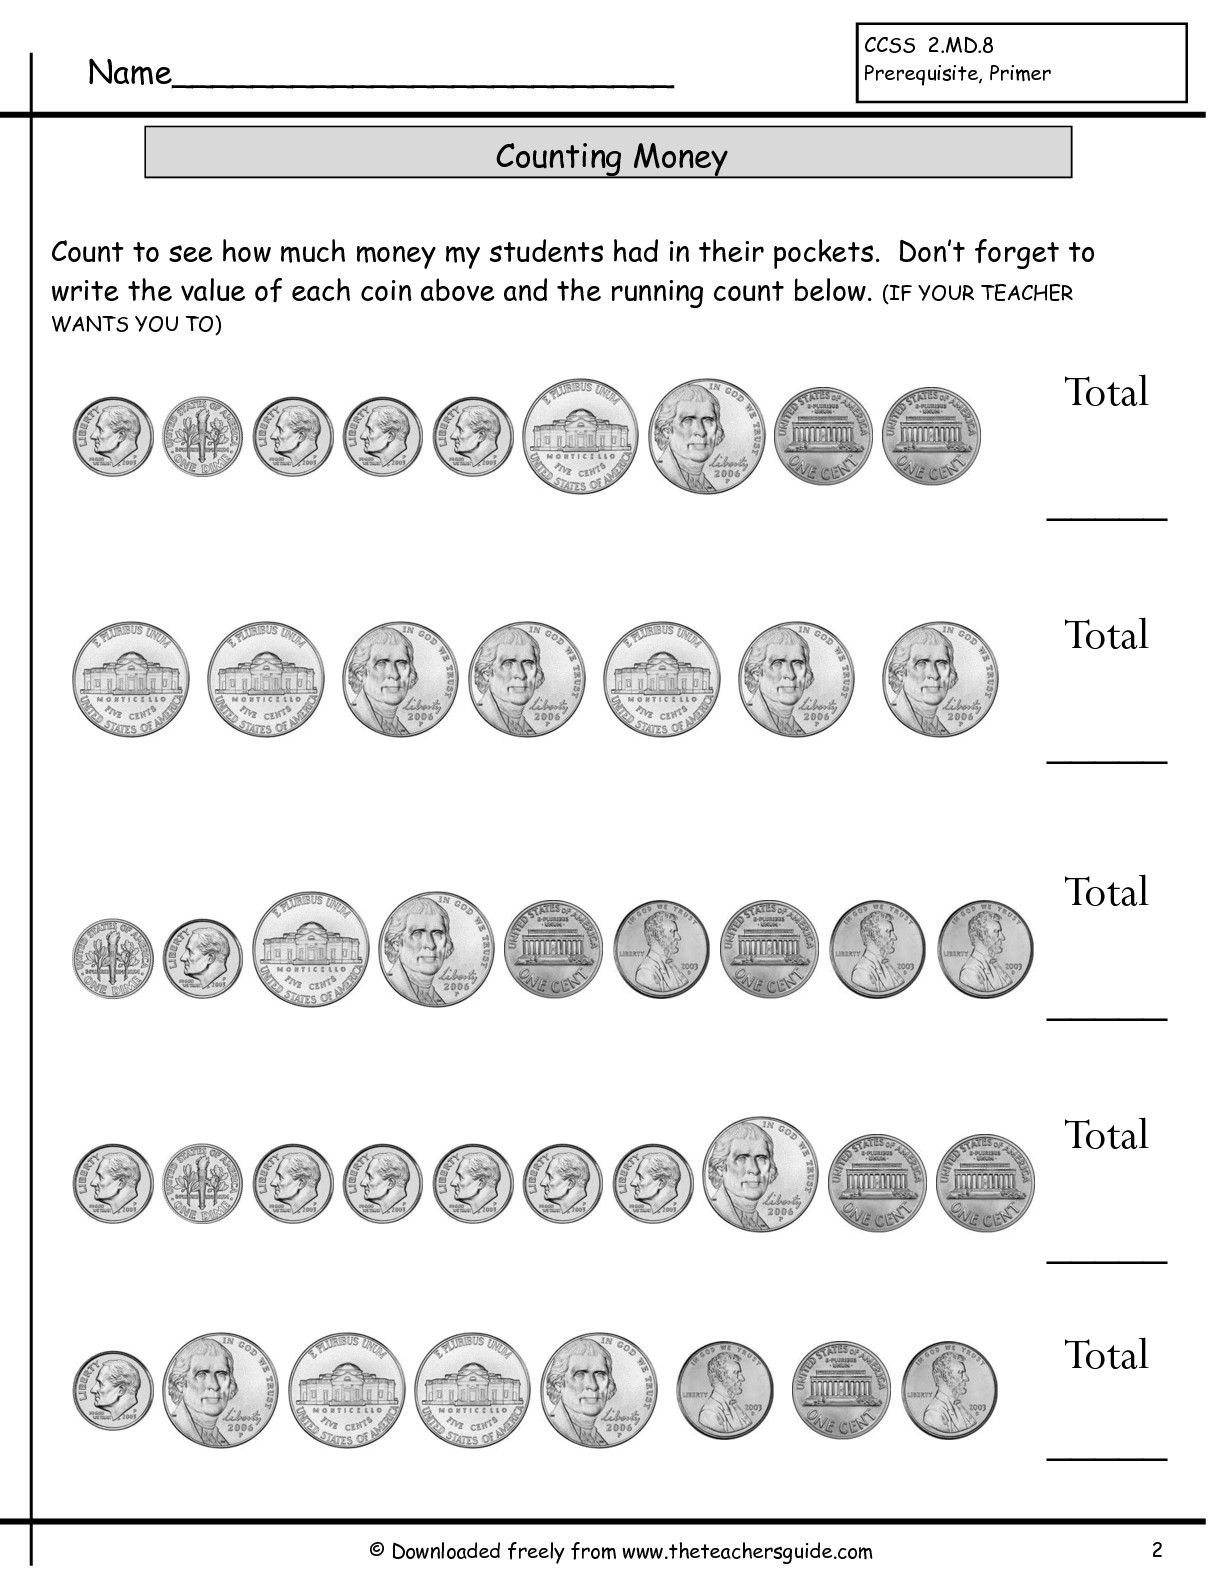 Counting Coins Worksheet With Images